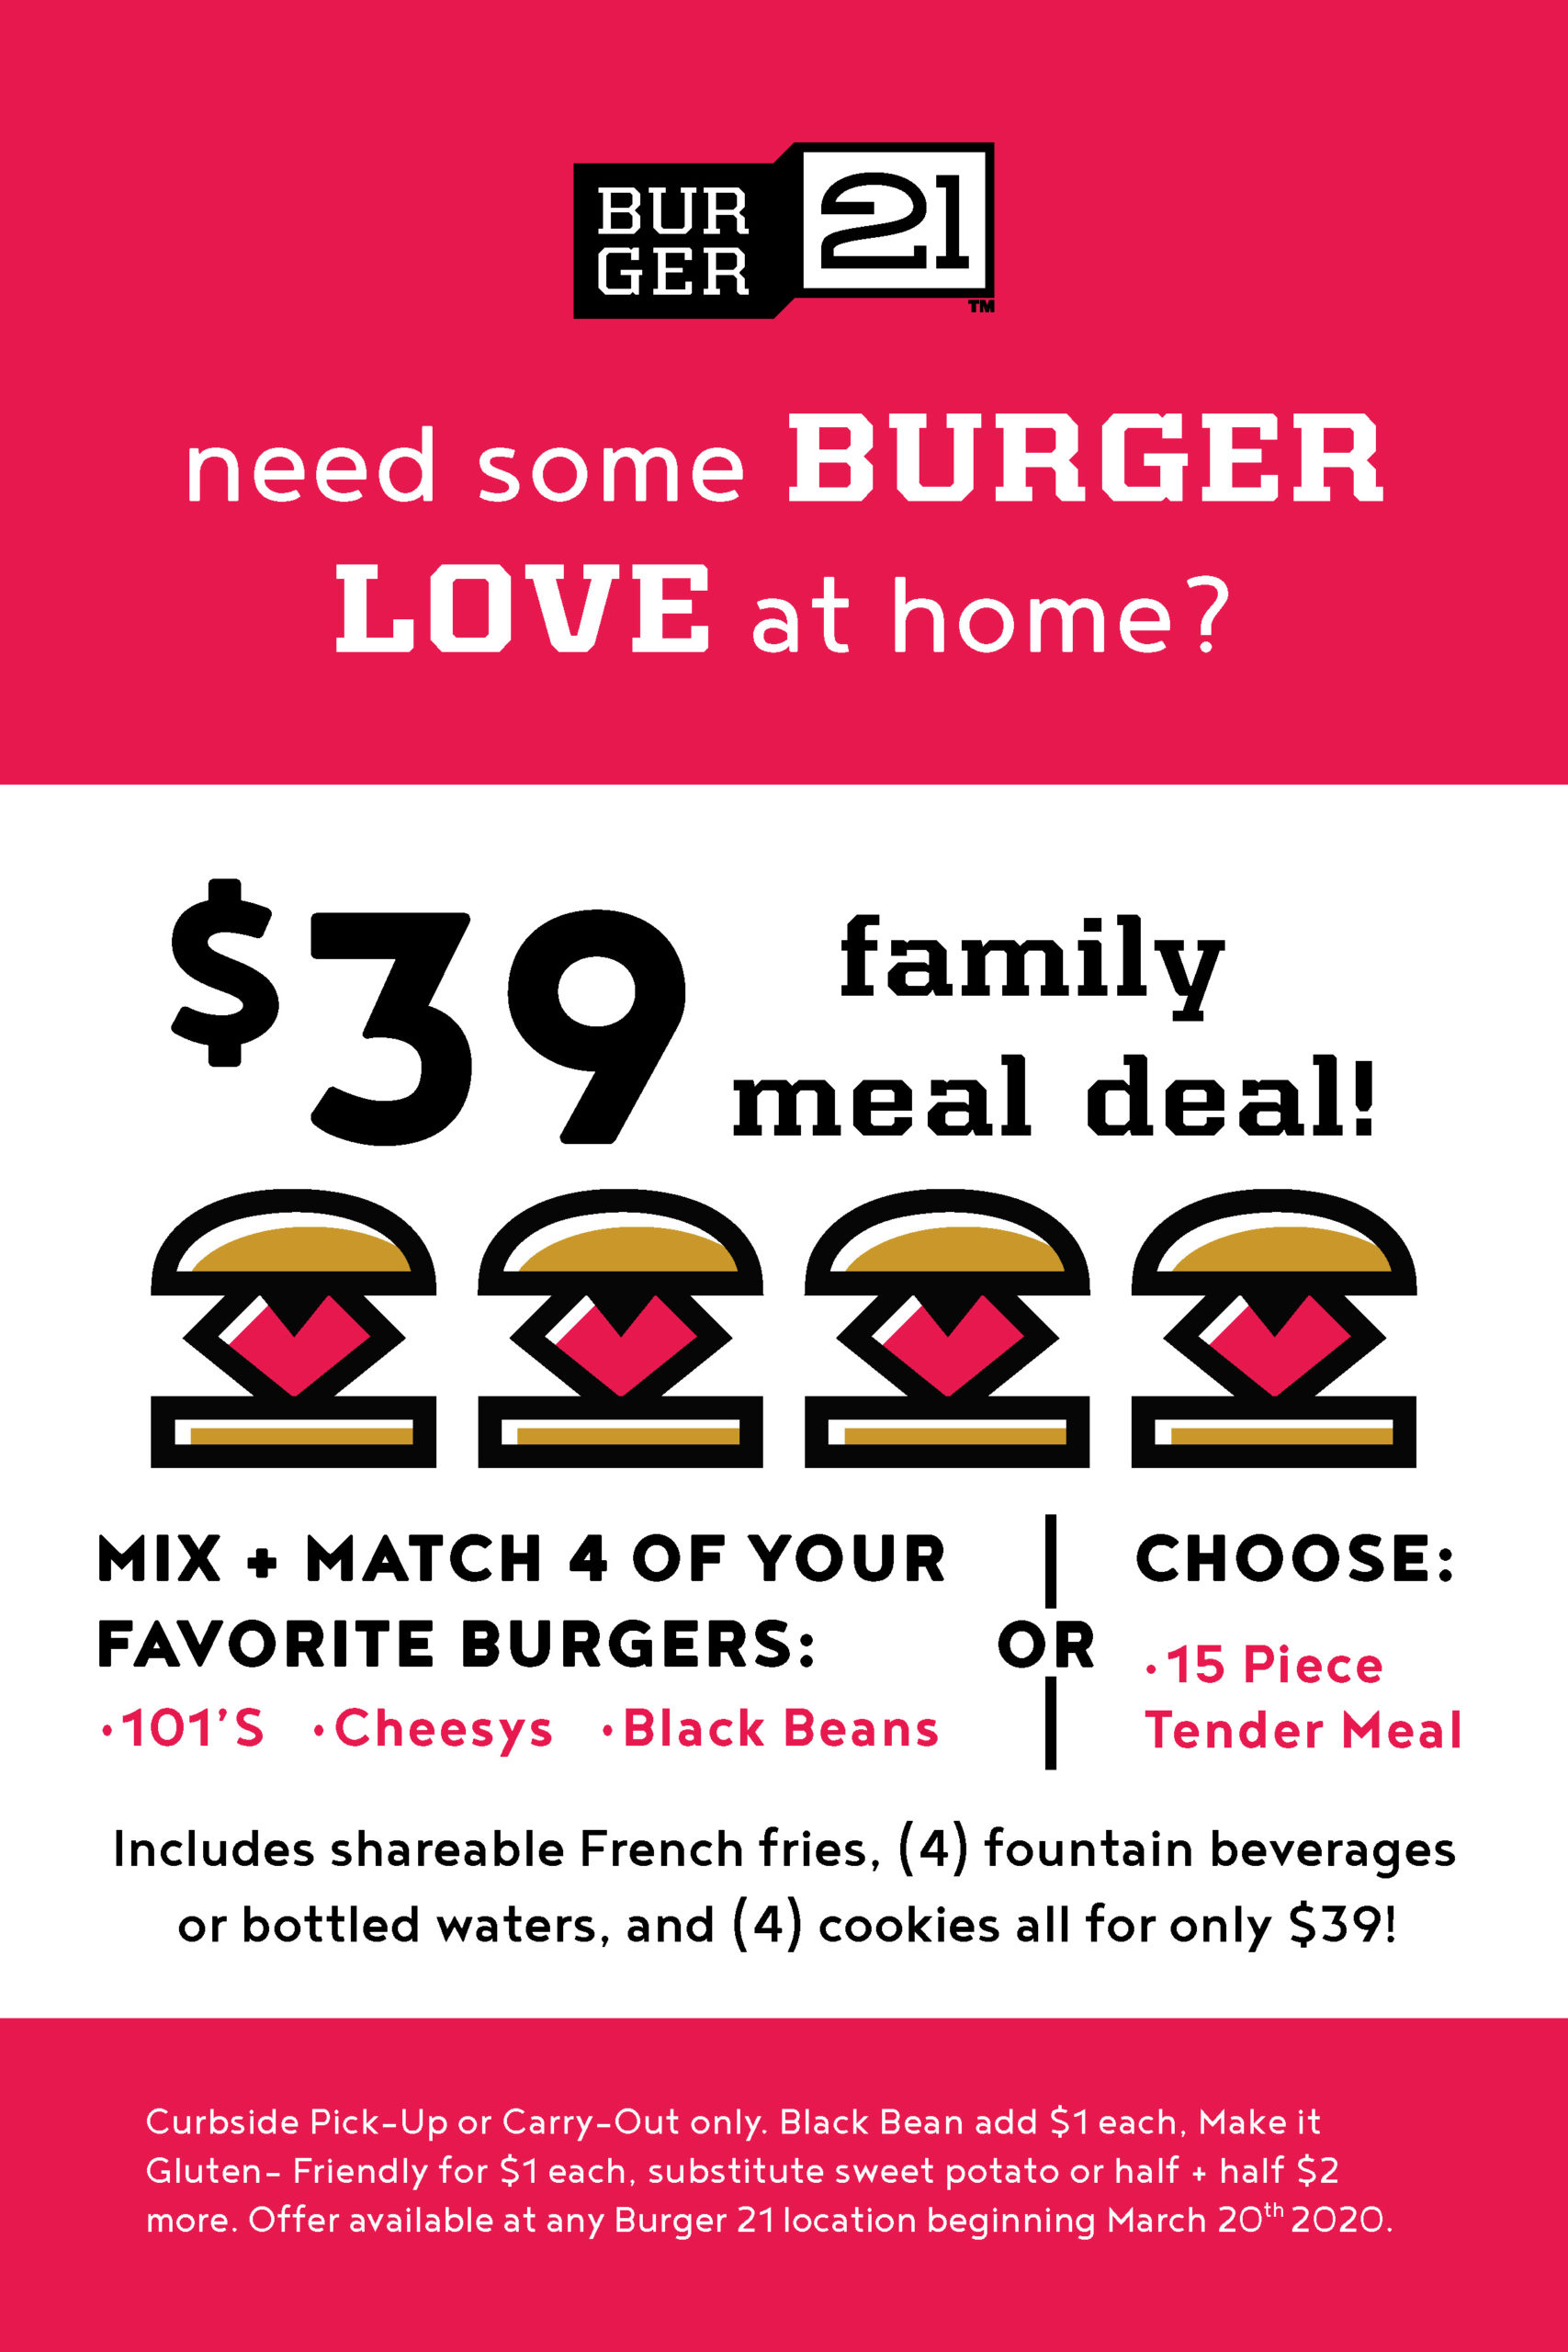 New Family Meal Deals!